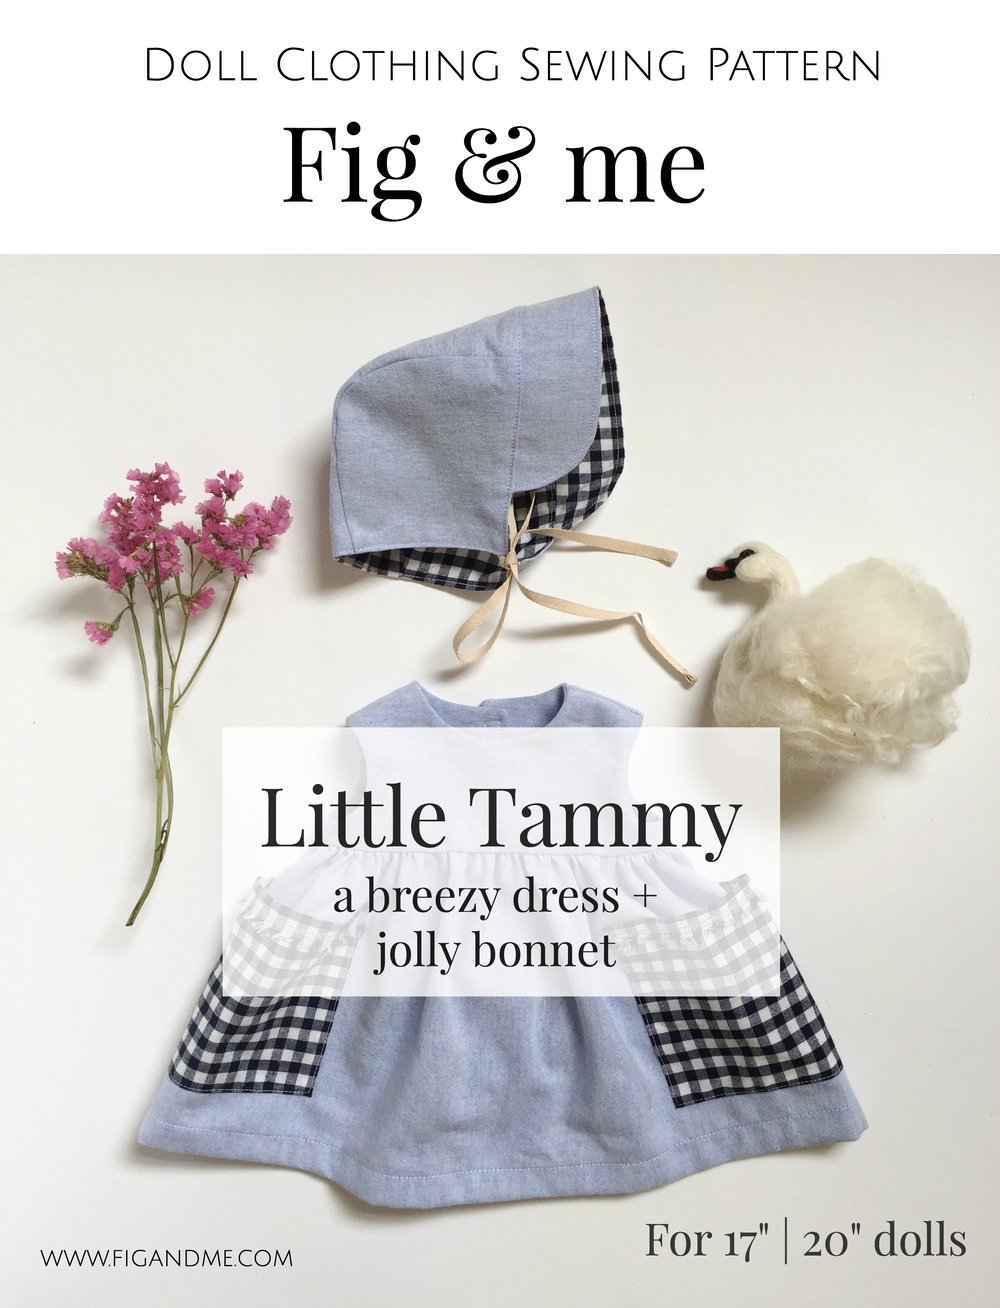 "Little Tammy is a doll clothing sewing pattern by Fig and Me. Suitable for waldorf-inspired or natural fiber art dolls in the 17"" to 20"" category."